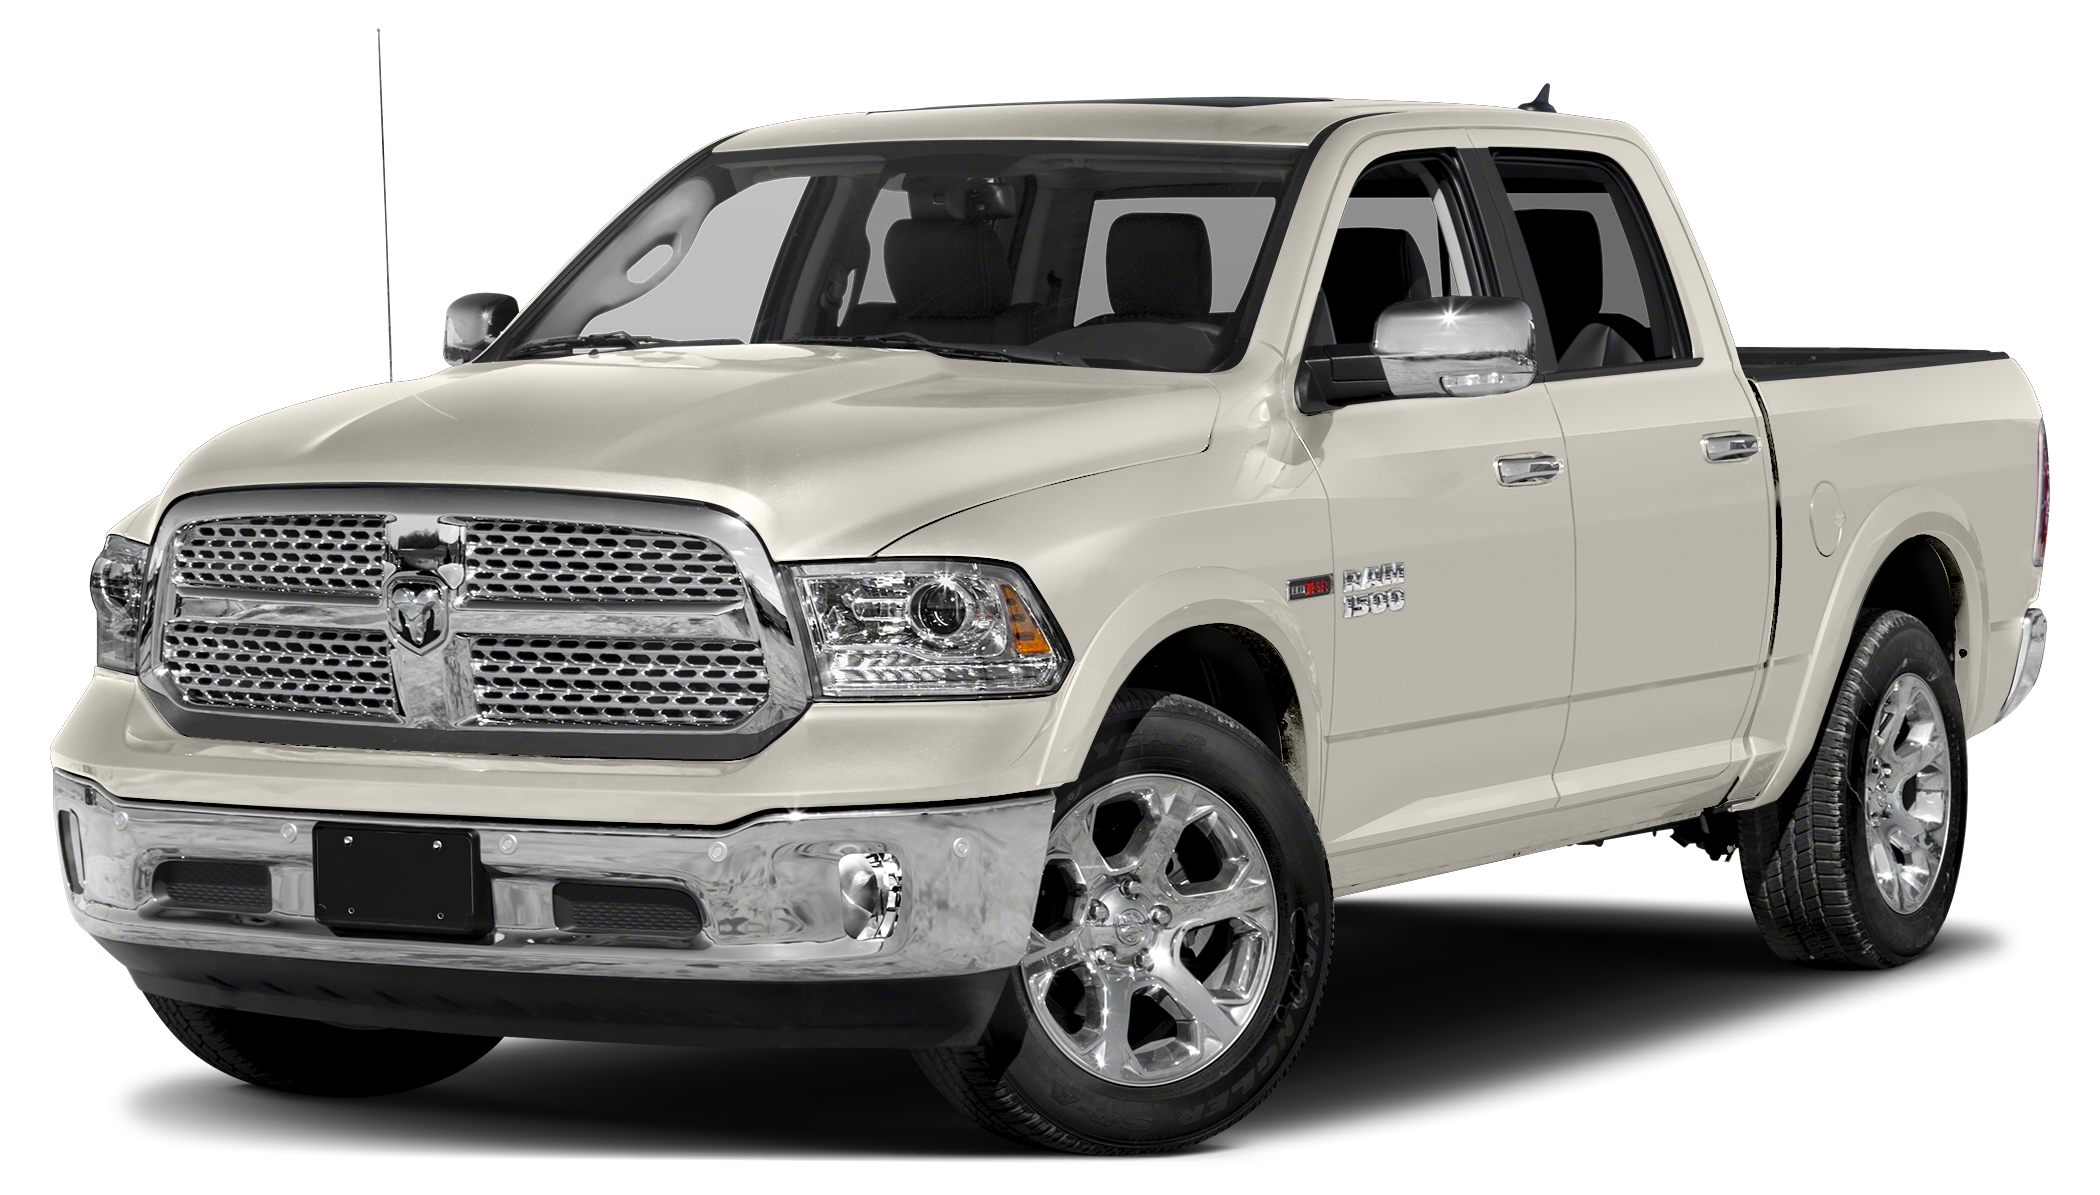 2017 RAM 1500 Laramie Just Arrived This tried-and-trued 2017 RAM 1500 Laramie with its grippy 4W